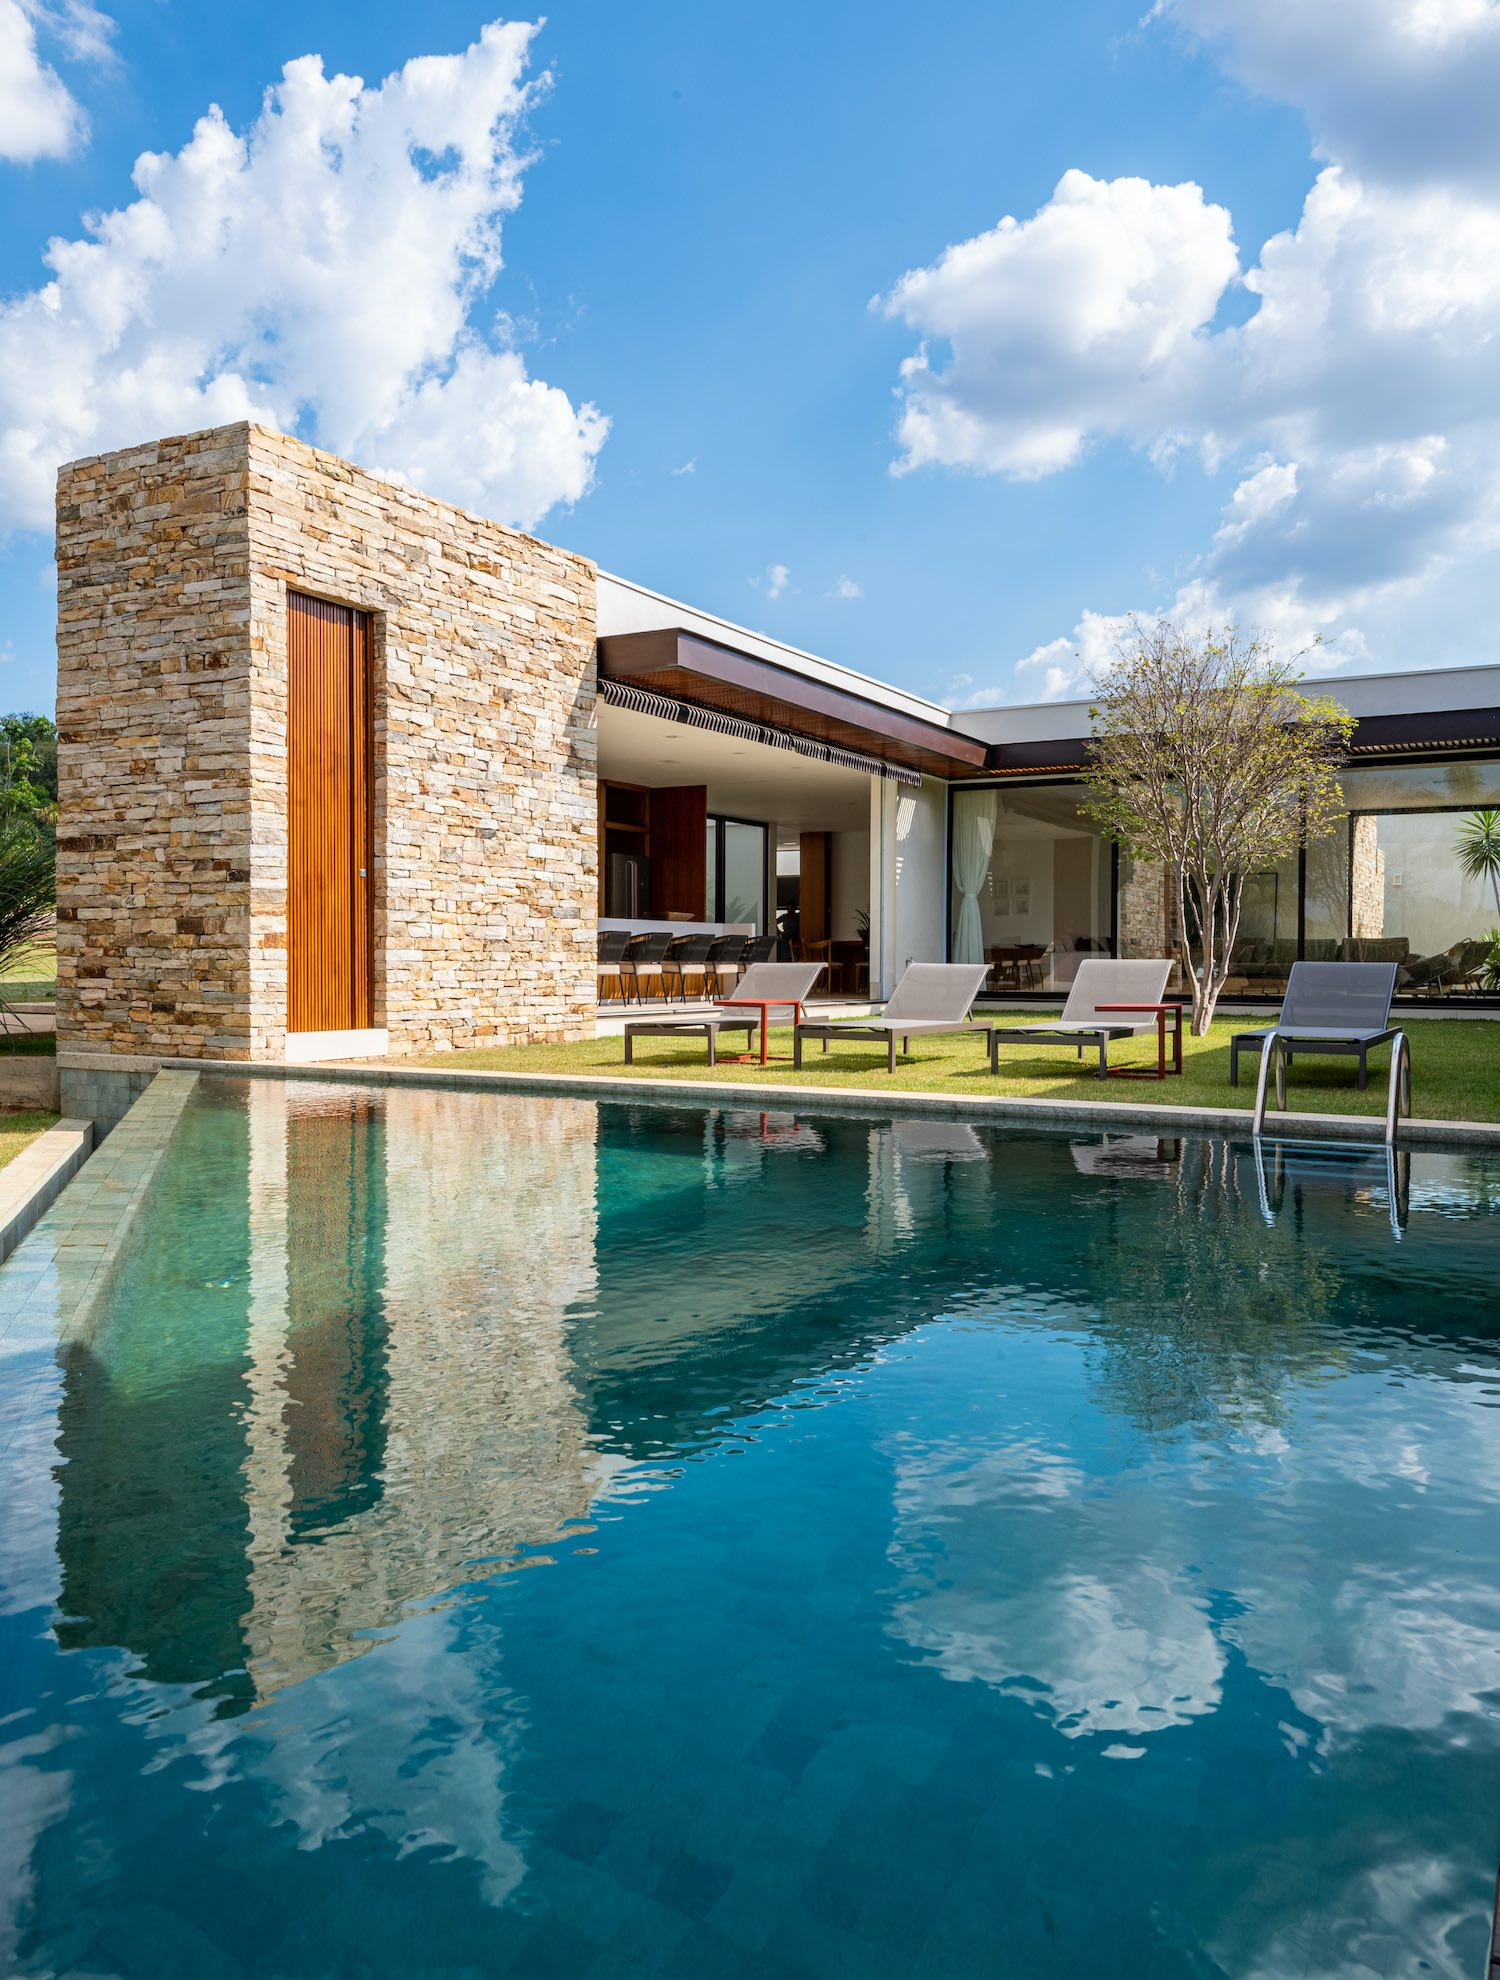 reflection of stone house in the pool